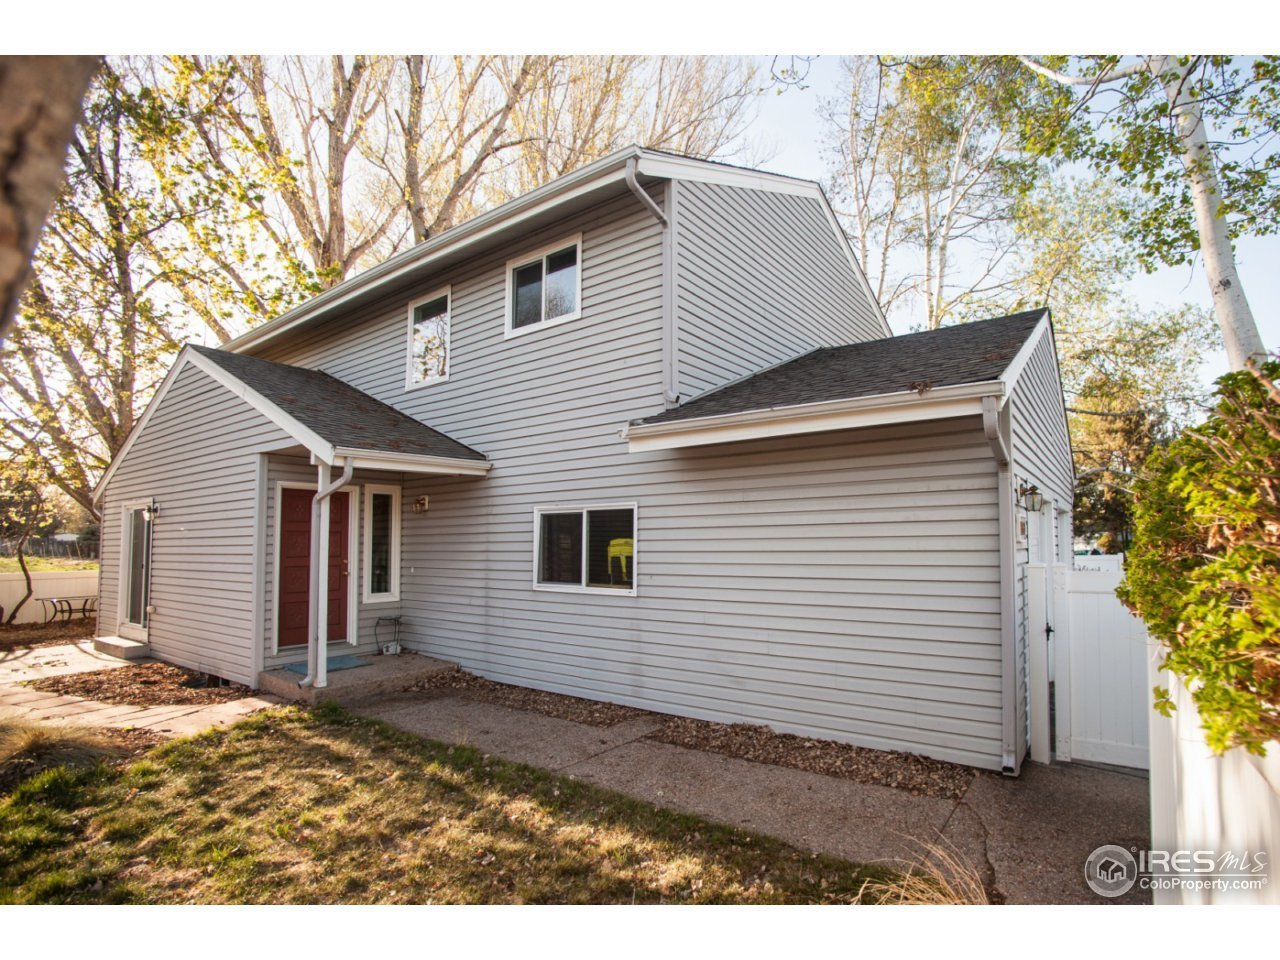 1950 29th ave, greeley, co 80634 | mls# 821927 | redfin